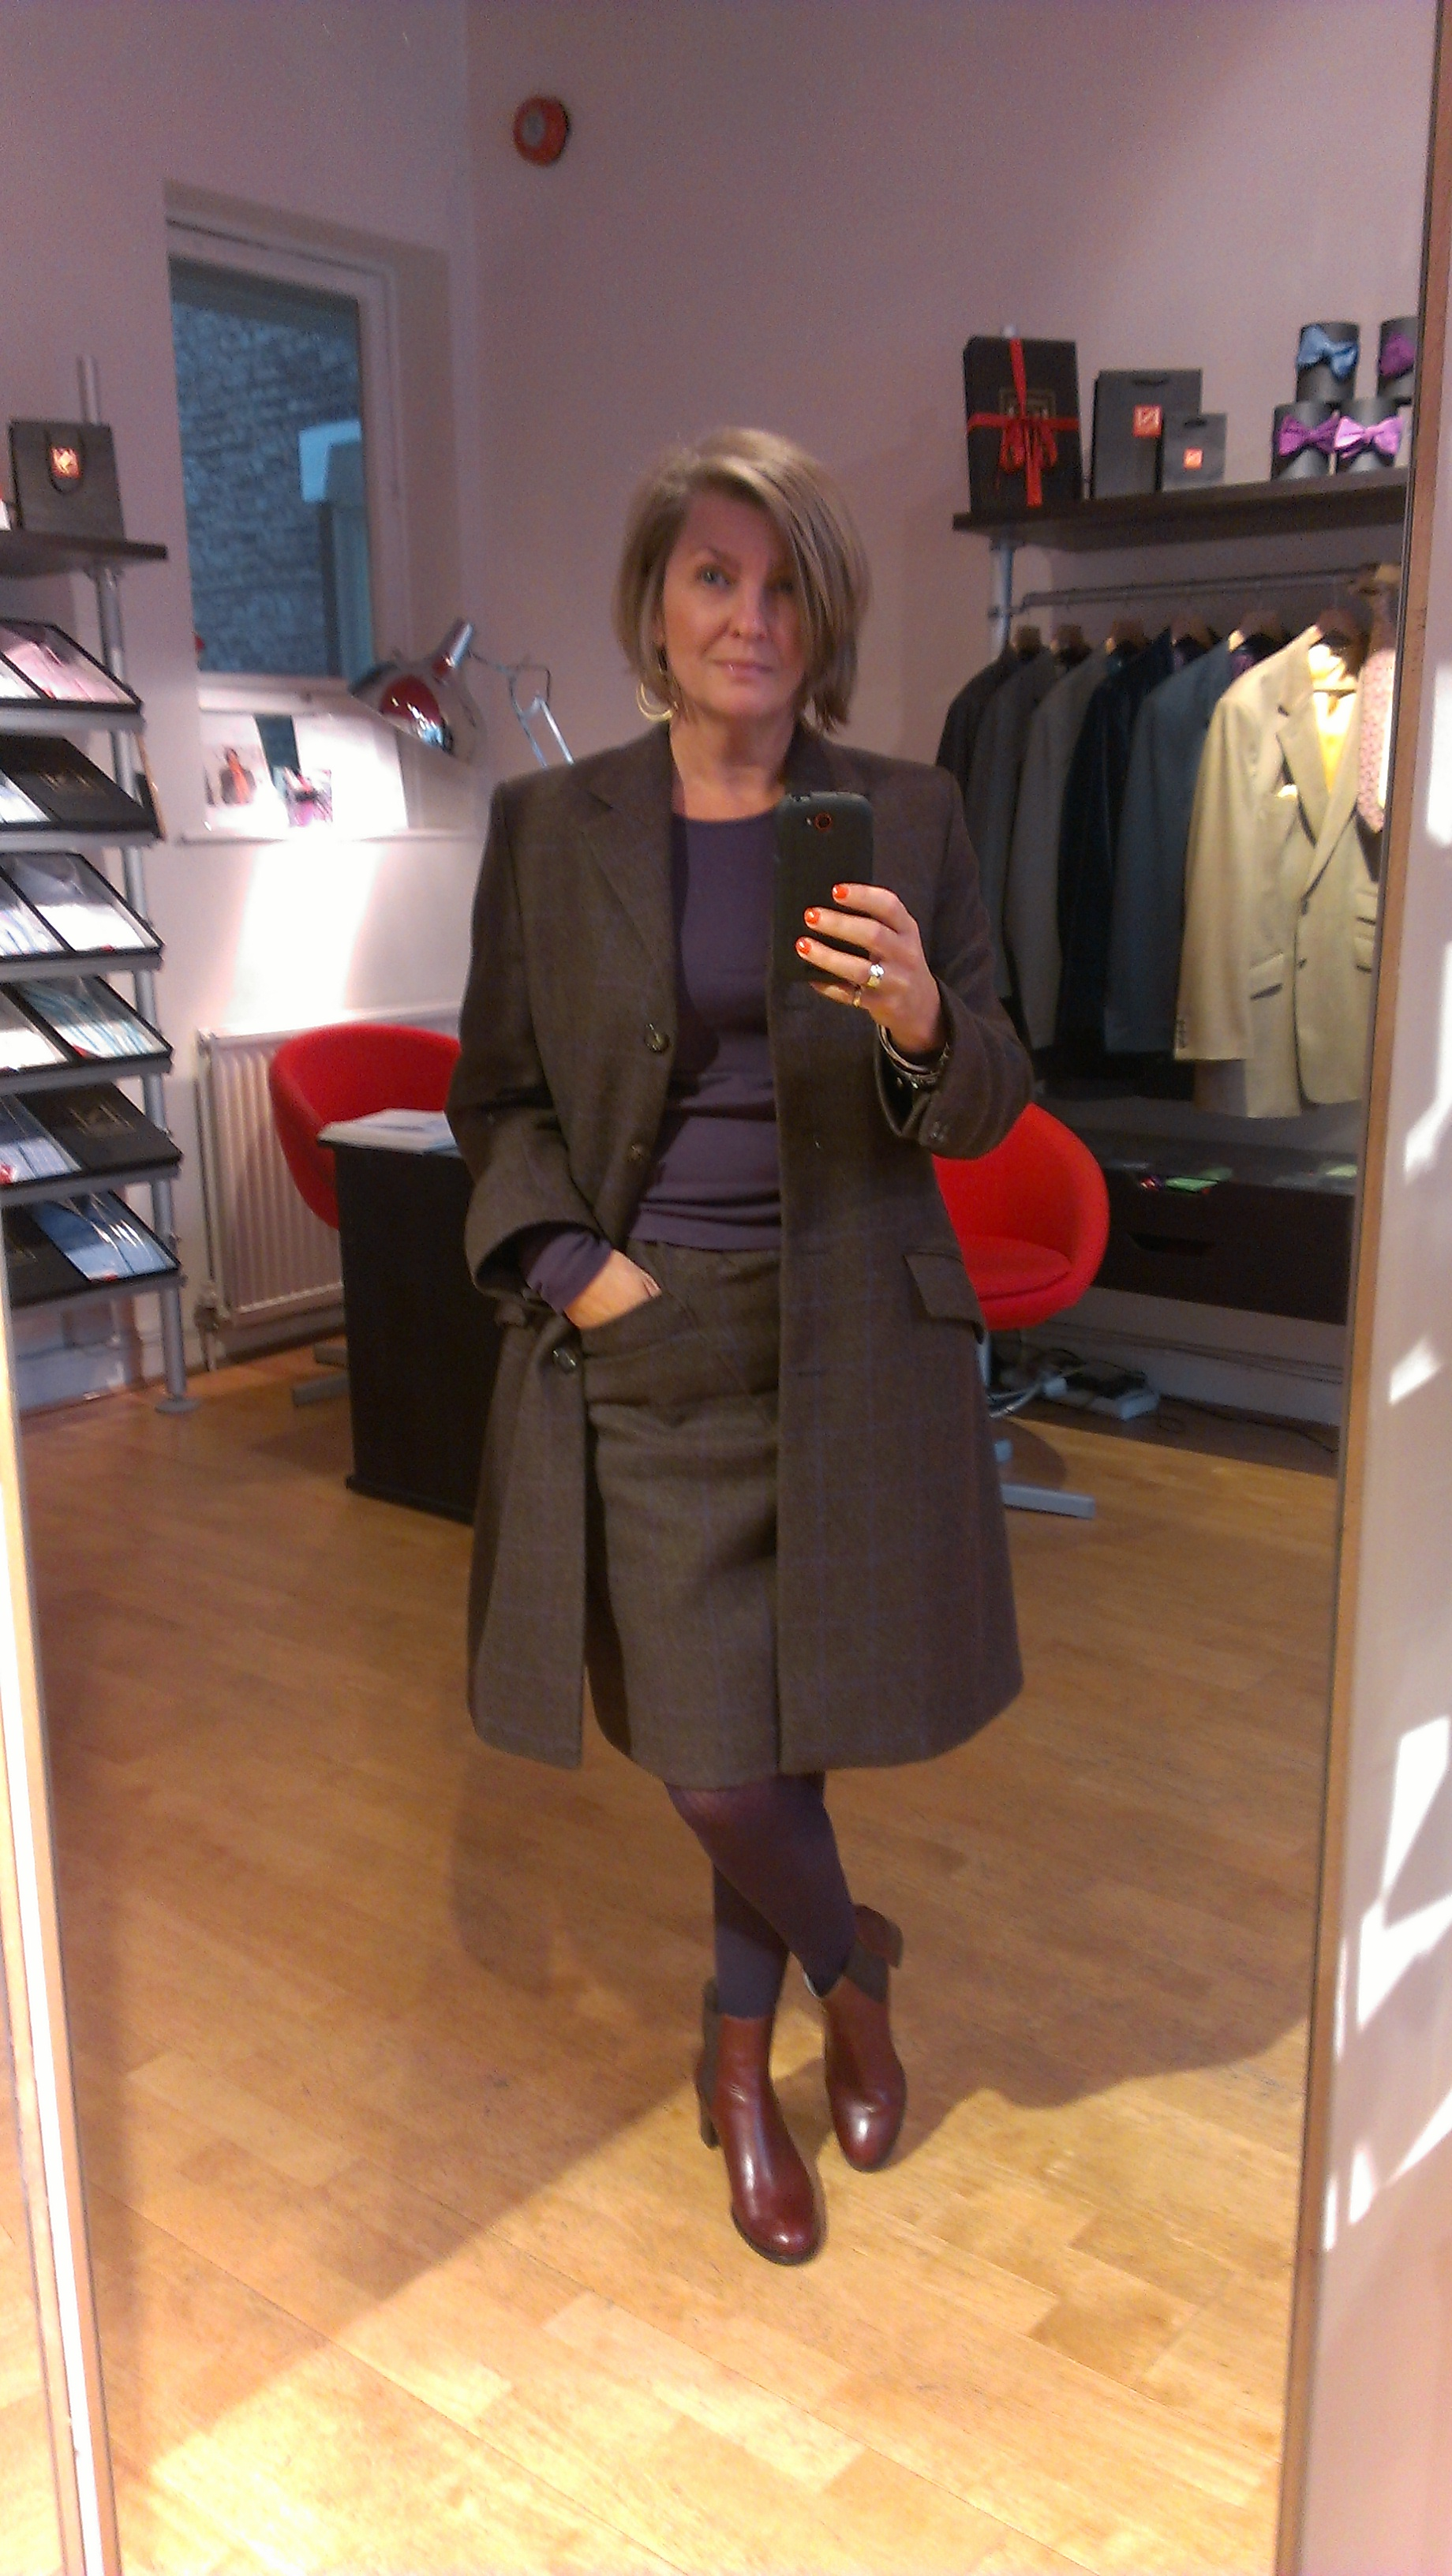 susannah-hall-brown-purple-overcheck-tweed-skirt-suit-bespoke-all-uk-made-ladies.jpg